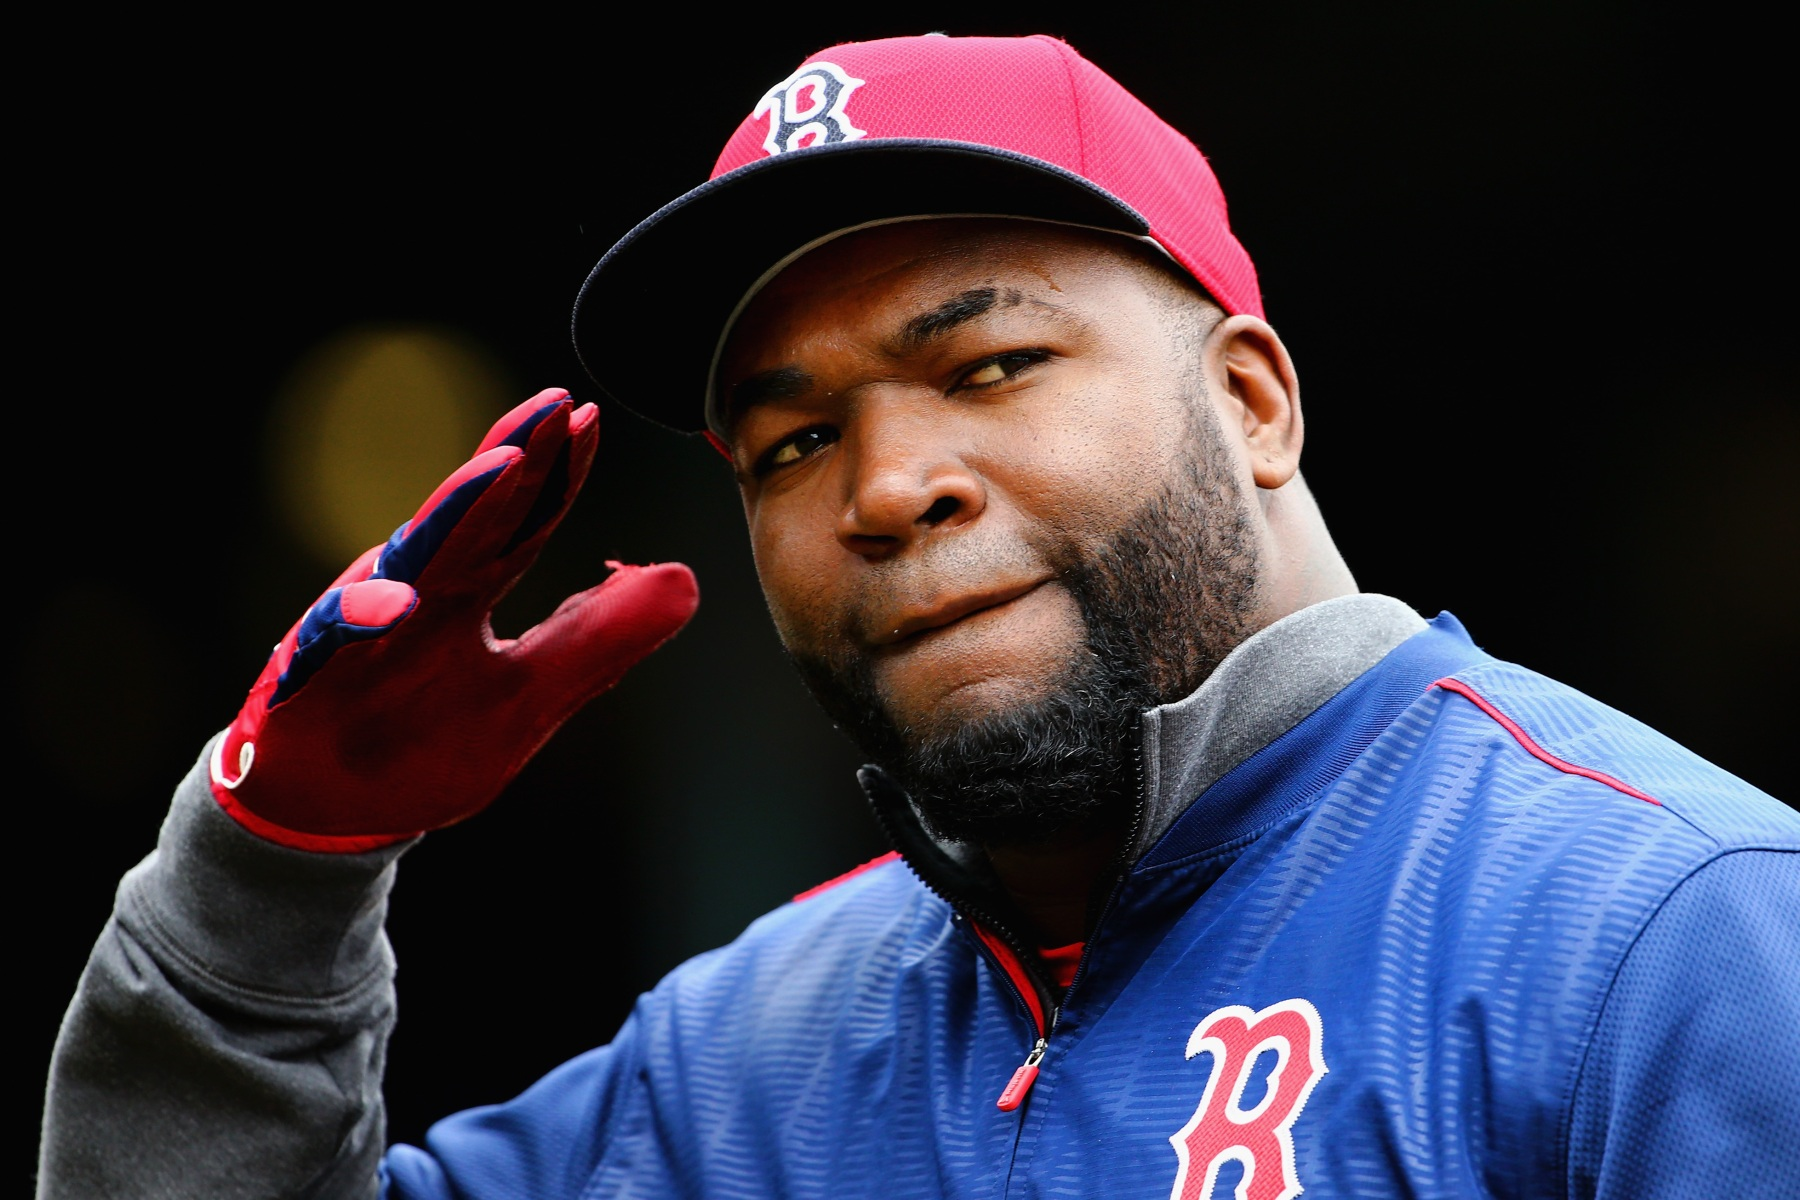 David Ortiz #34 of the Boston Red Sox enters the dugout after batting practice before the Red Sox home opener against the Baltimore Orioles at Fenway Park on April 11, 2016 in Boston, Massachusetts.  (Maddie Meyer/Getty Images)